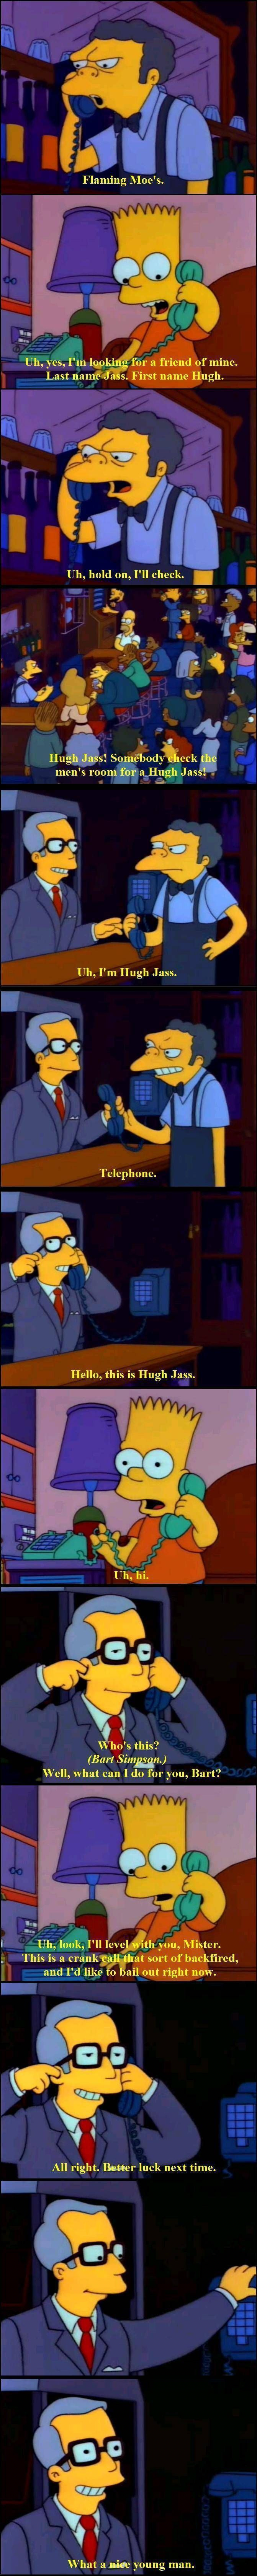 Darn it for Bart Simpson! That should've been his prank call for 'Huge Ass'. But at Moe's Tavern--I mean, Flaming Moe's, there's a guy named Hugh Jazz.